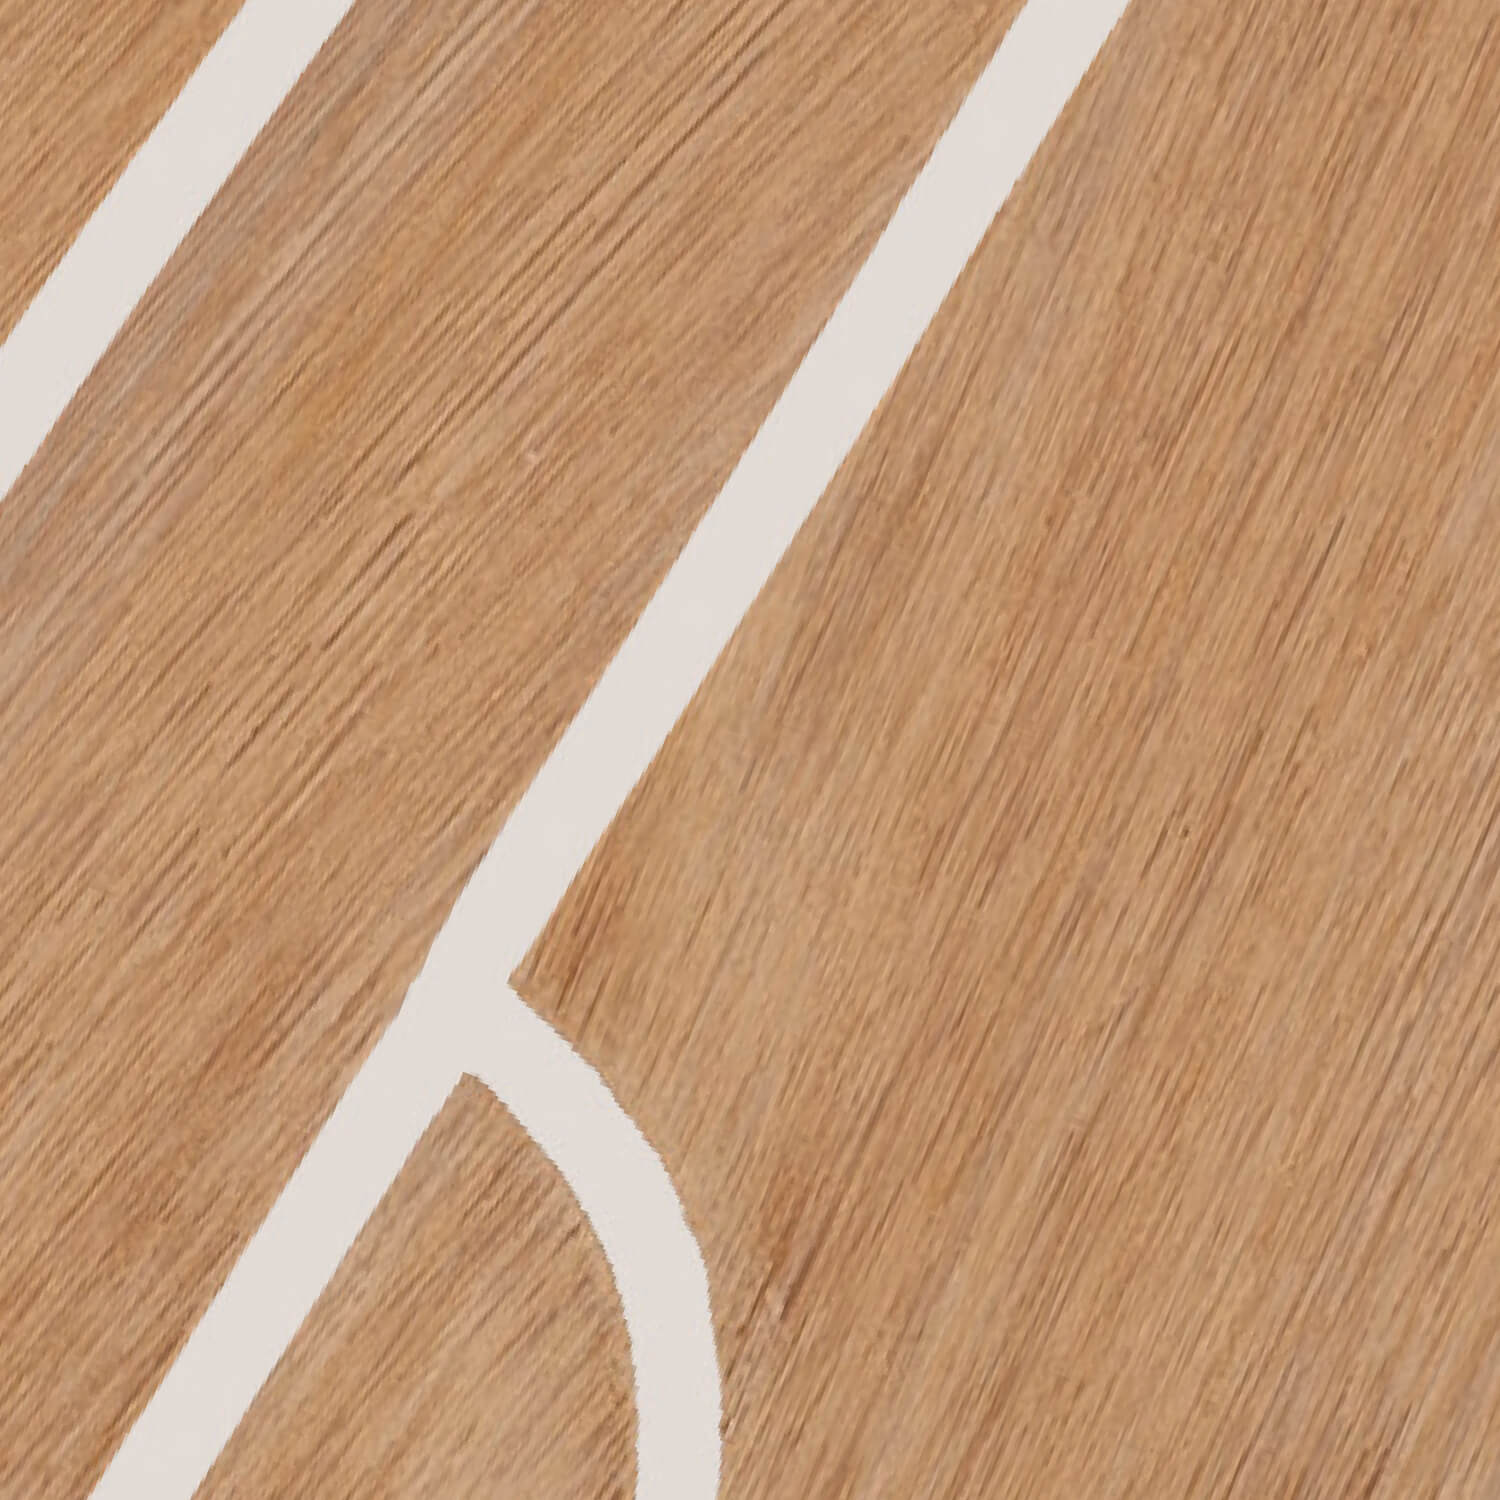 TEAK WHITE CAULKING